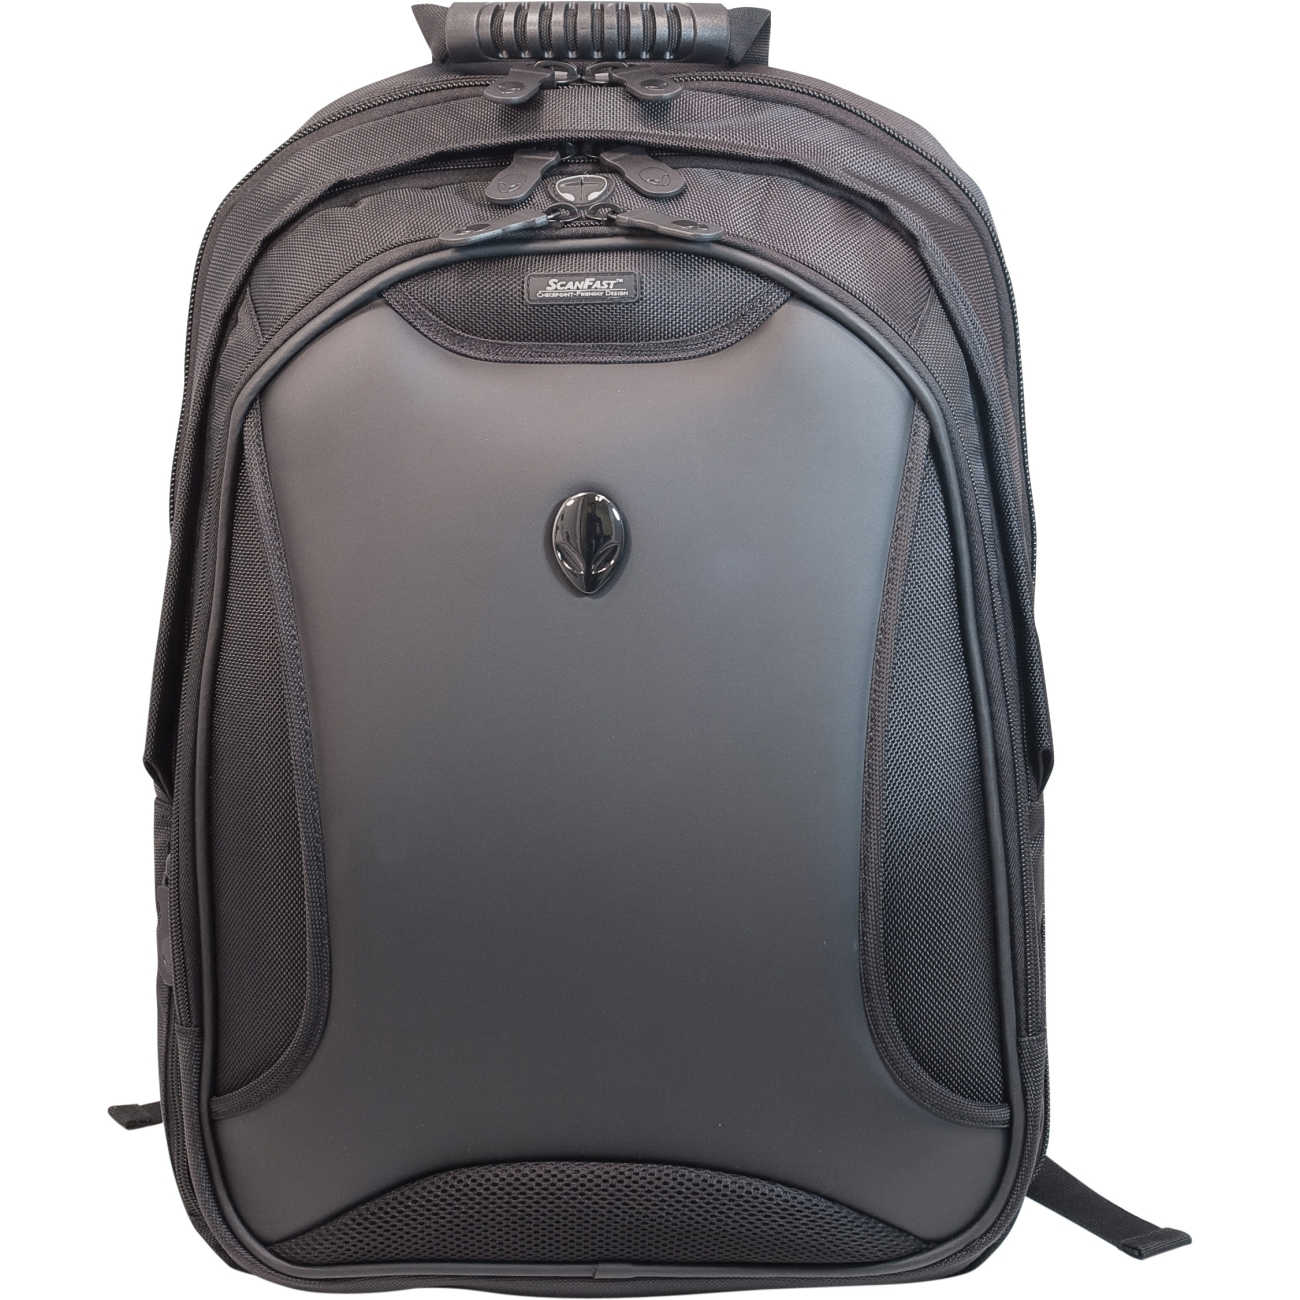 Mobile Edge Me-awbp20 Alienware Orion Backpack (mobile Ed...